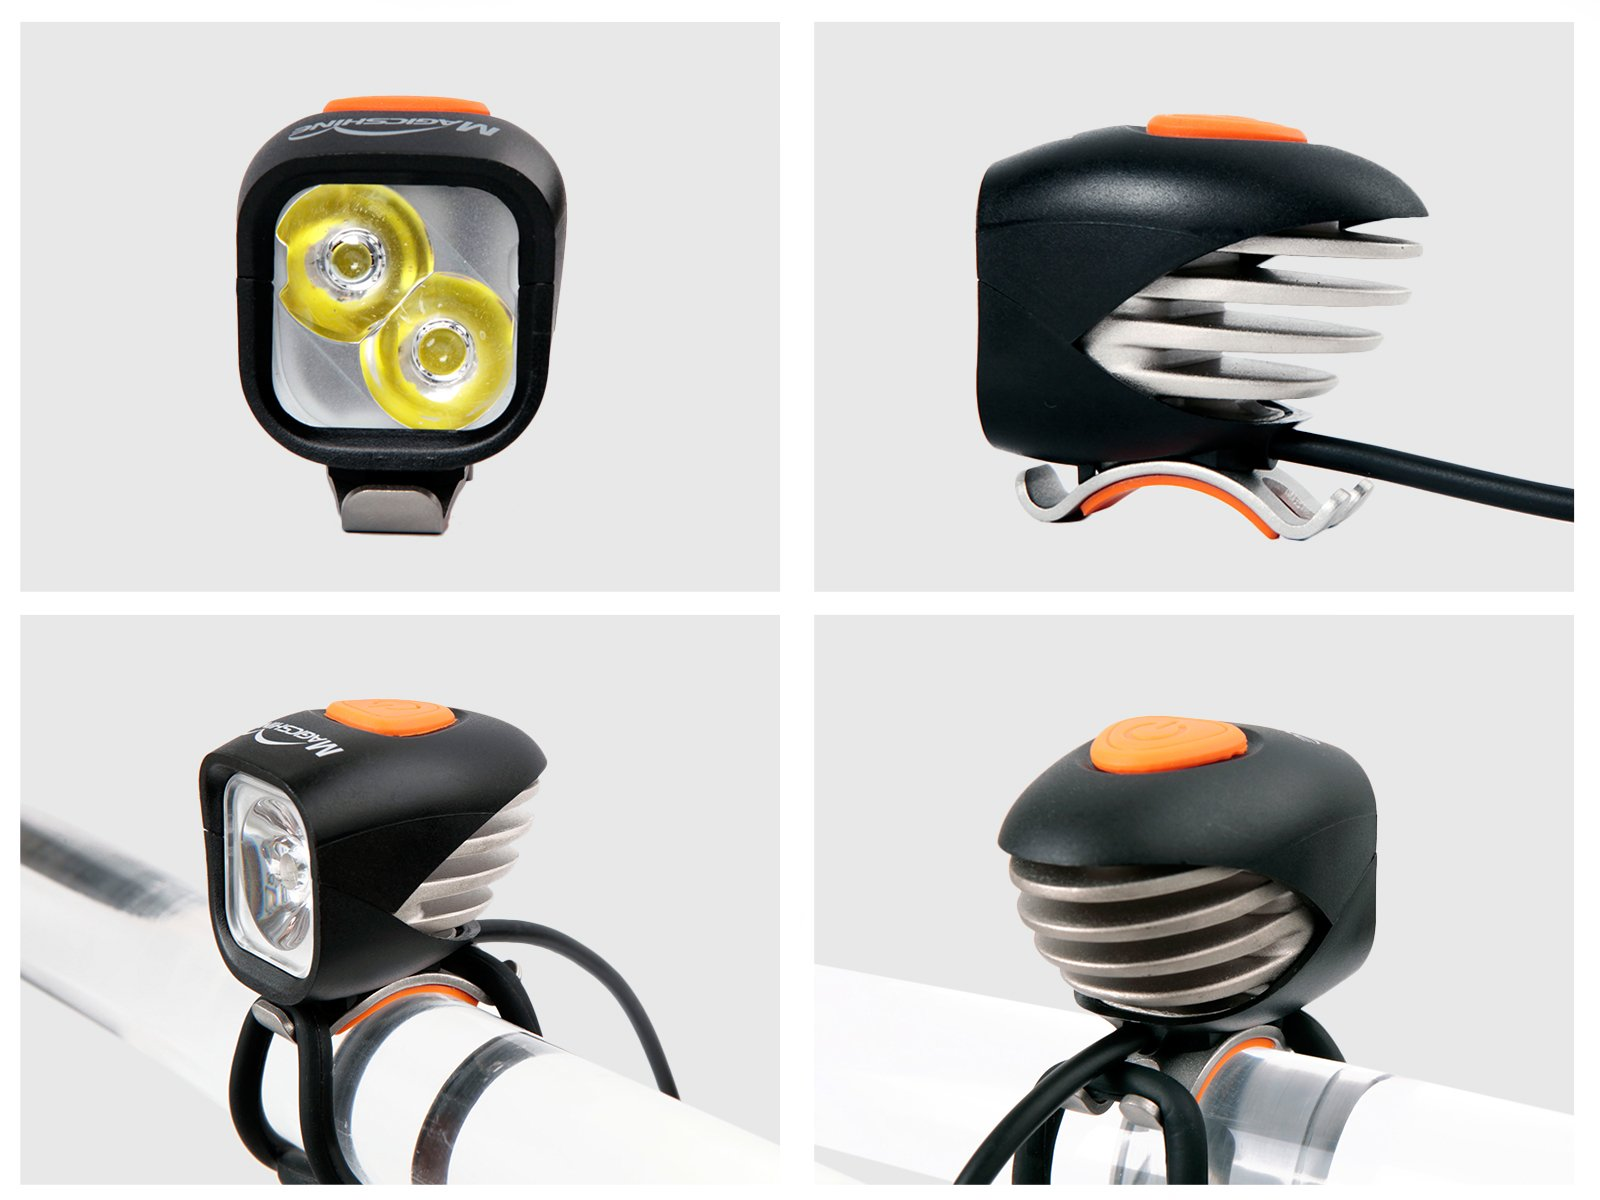 Magicshine MJ 902, 1600 Lumens Bike Light Set, Wireless Remote Bicycle Lights Front And Rear Combo, Rechargeable 2 CREE XM-L2 LED Bike Tail Light, Portable & Convenient Bright Bike Light by Magicshine (Image #5)